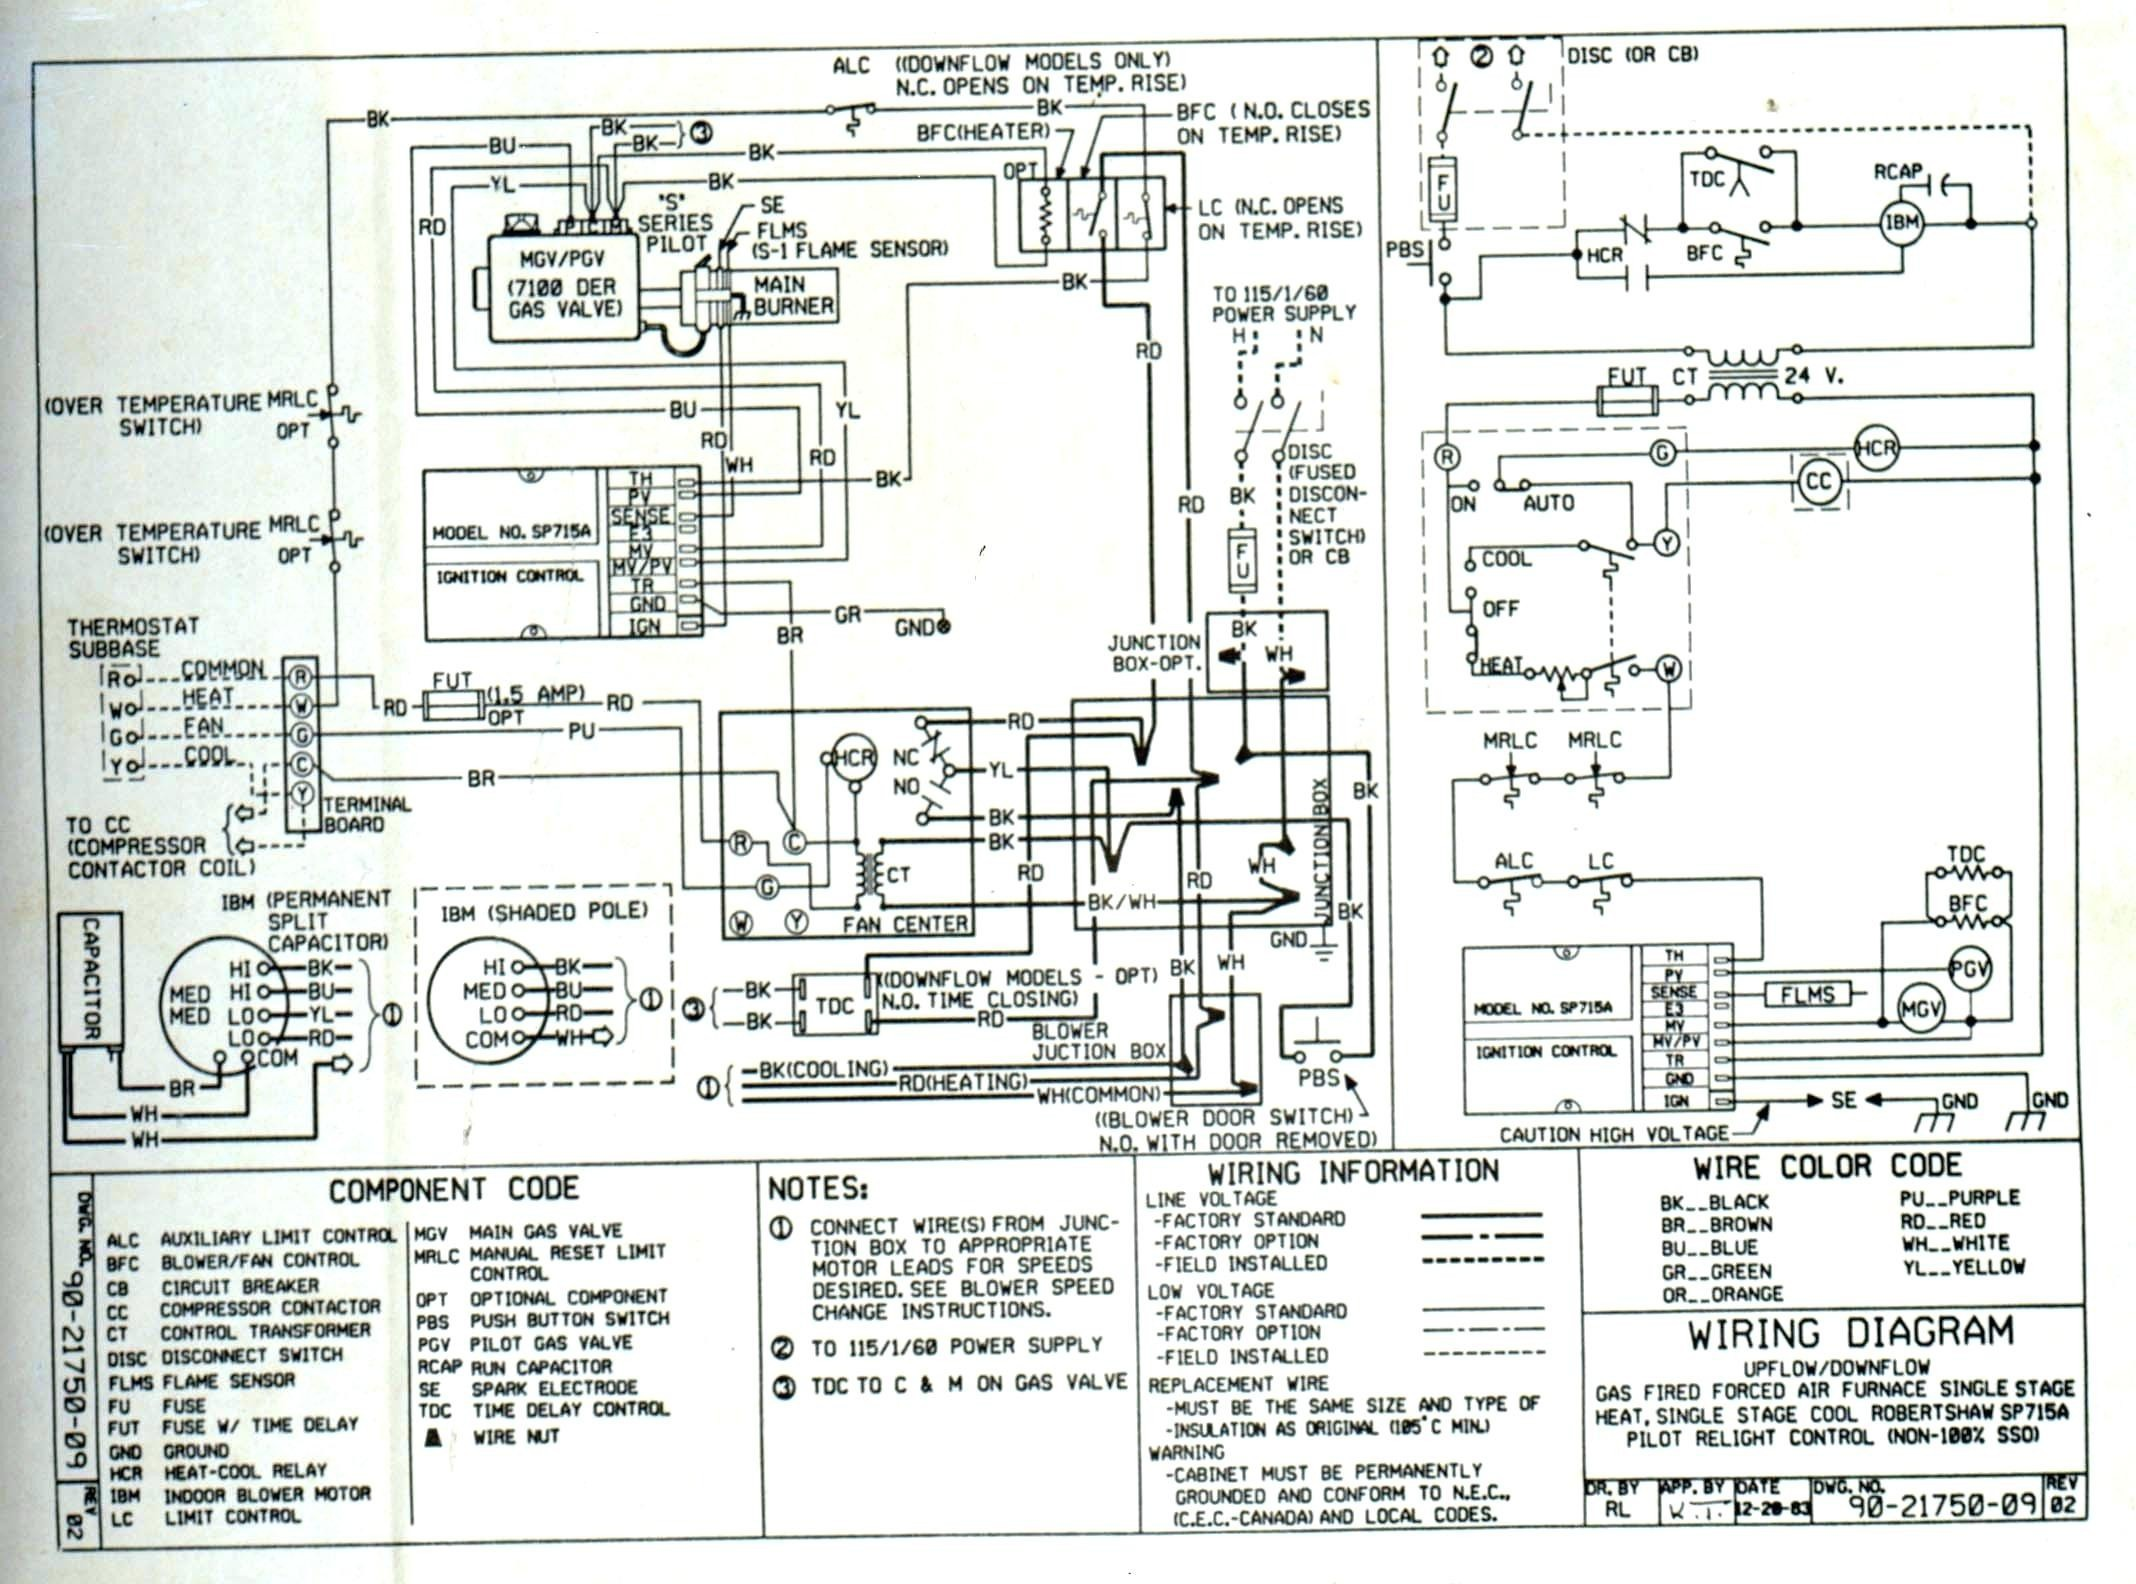 Air conditioner wiring diagram new wiring diagram image free wiring diagram hvac electrical wiring diagram symbols refrence hvac wiring diagram of wiring wiring diagram car aircon asfbconference2016 Images